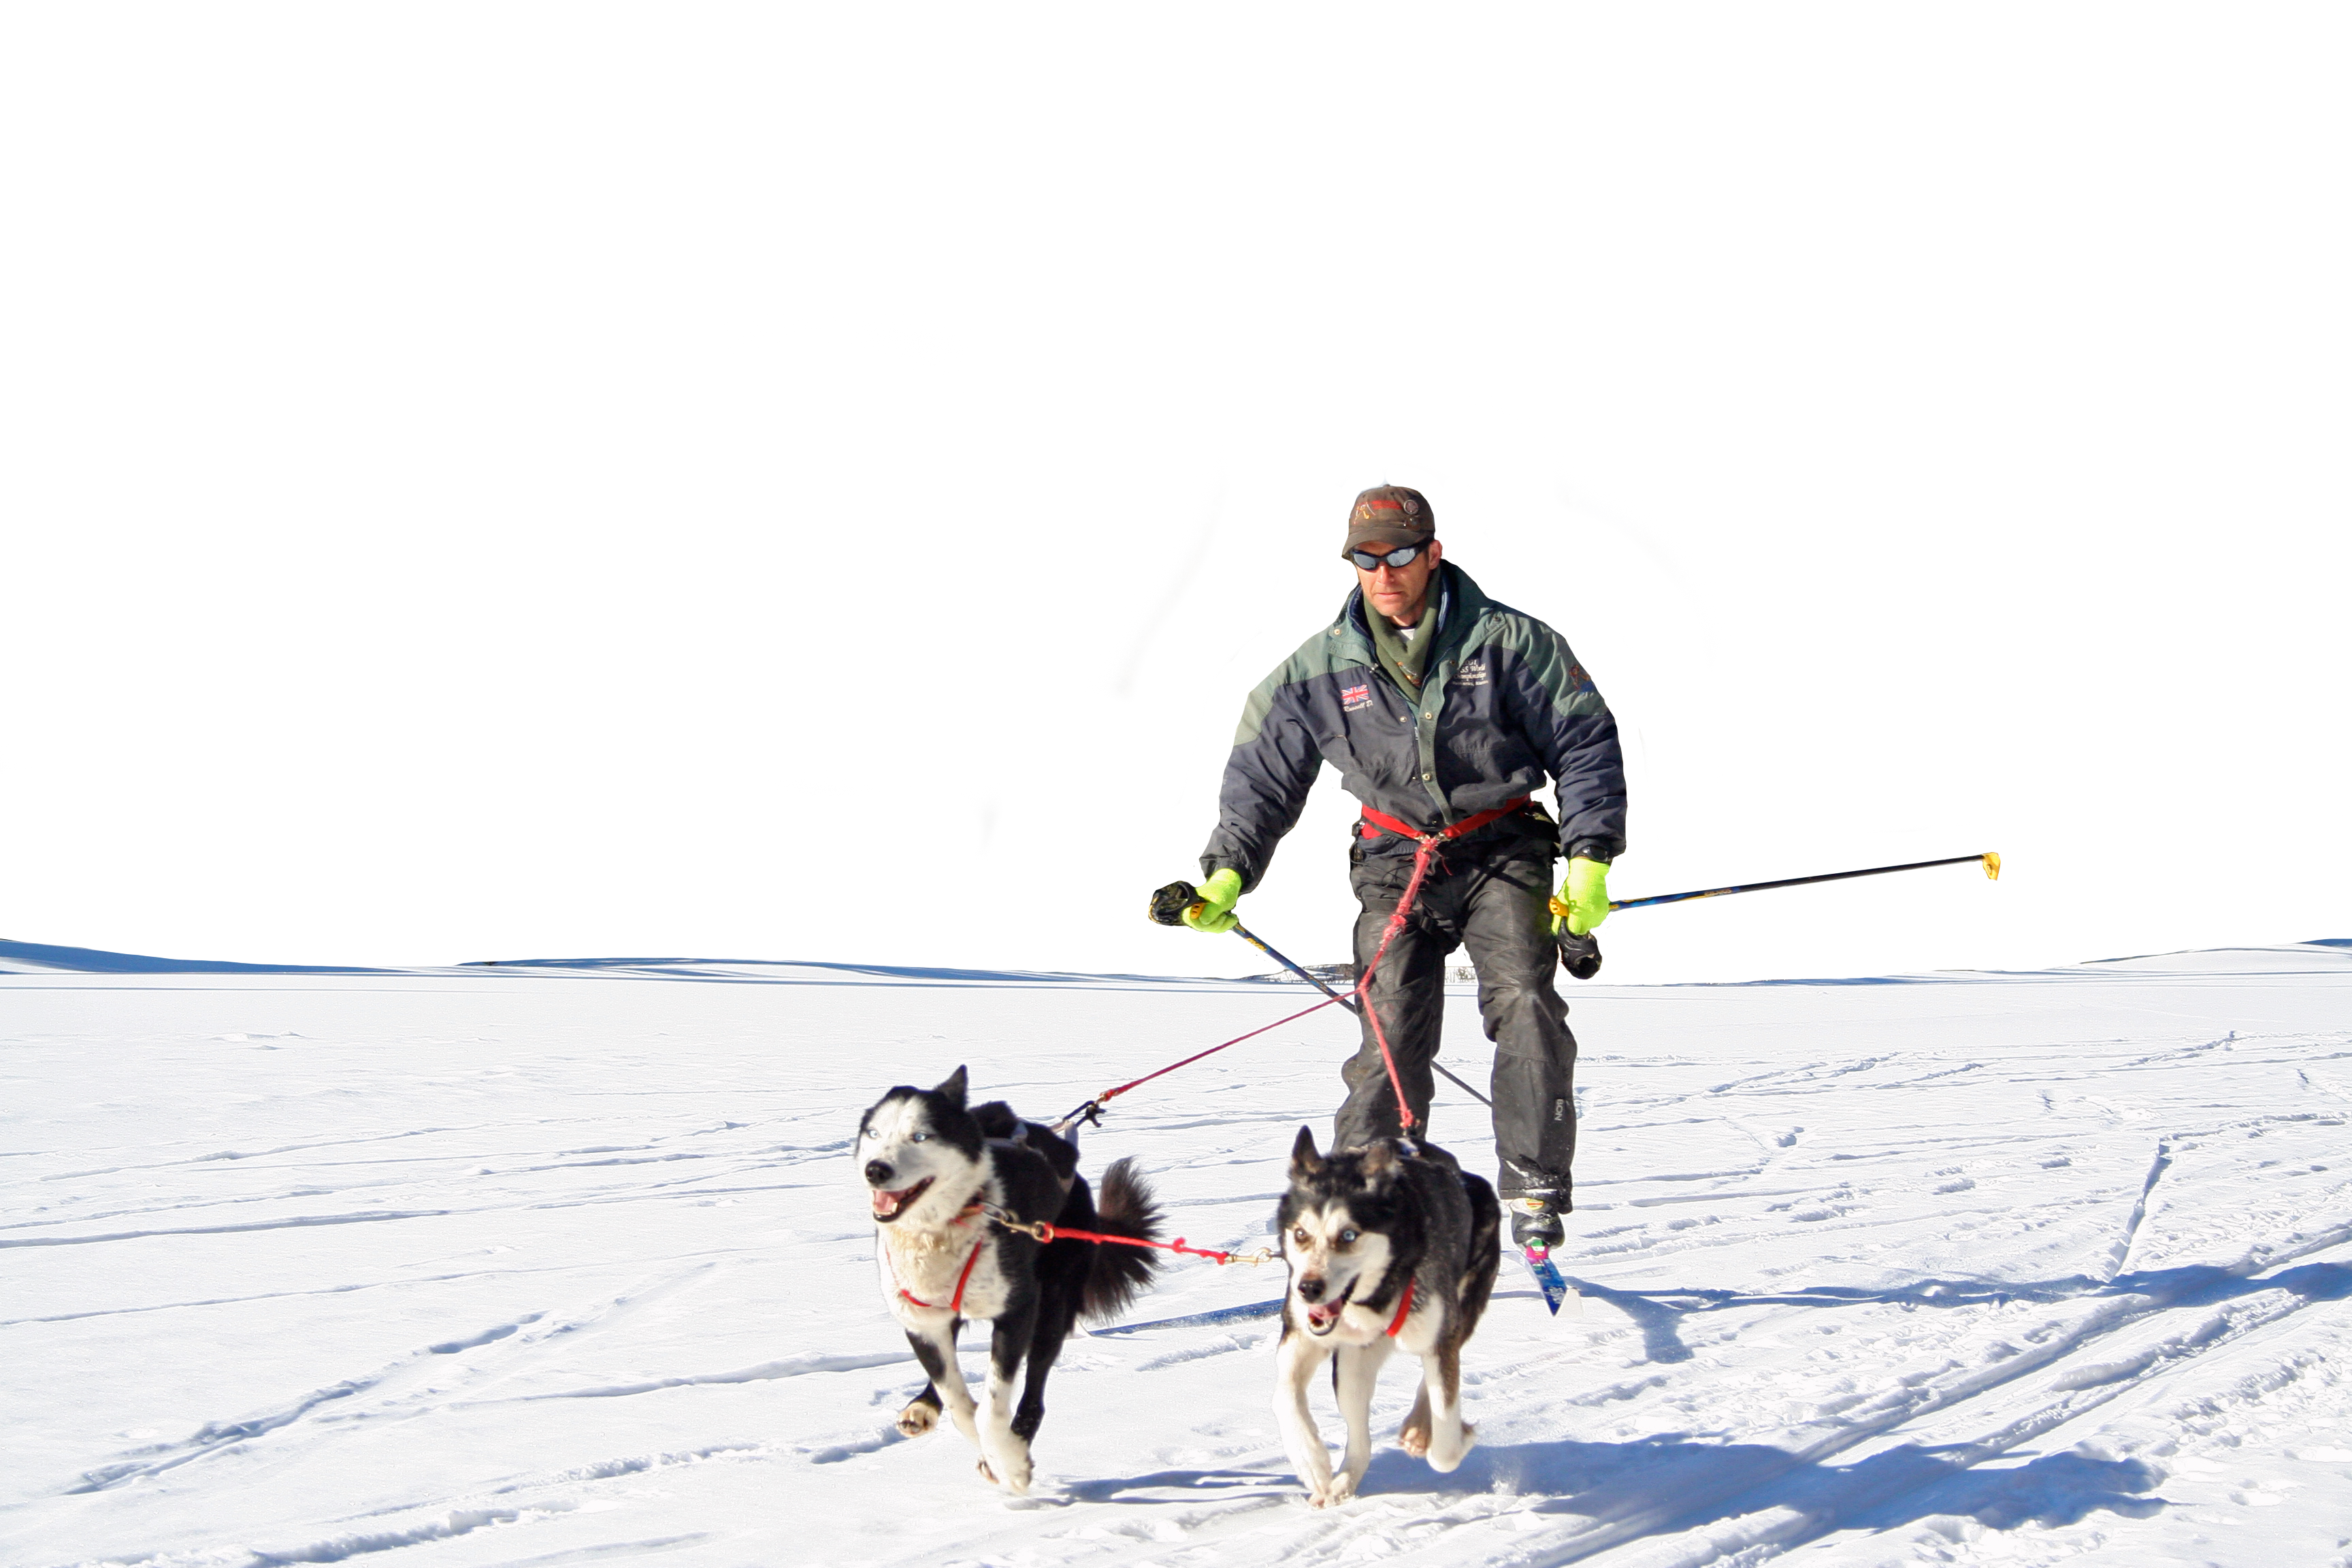 Man skijoring with two huskies